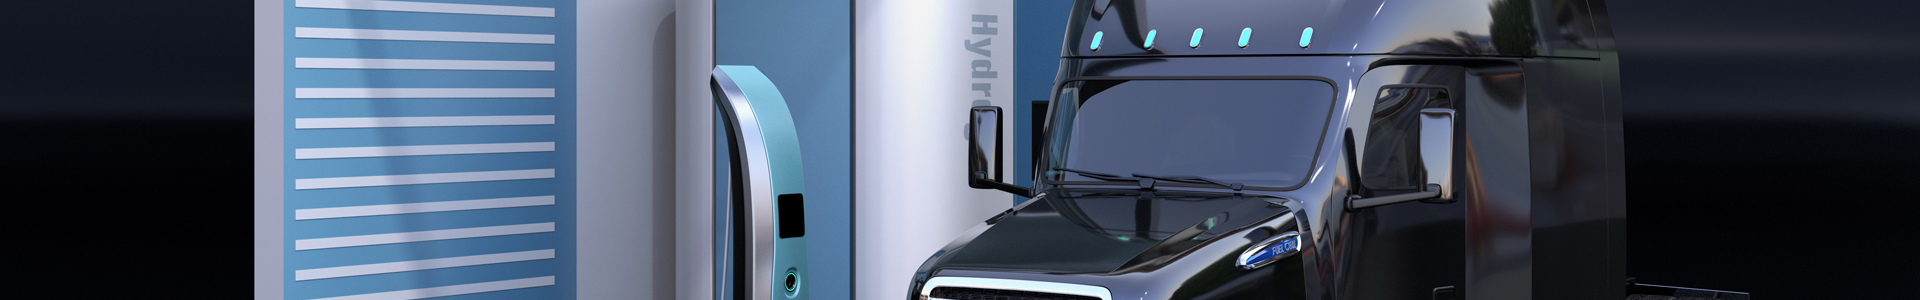 Case Study: Ricardo's strategic and technical groups evaluated packaging options for a Class 8 Truck Fuel Cell